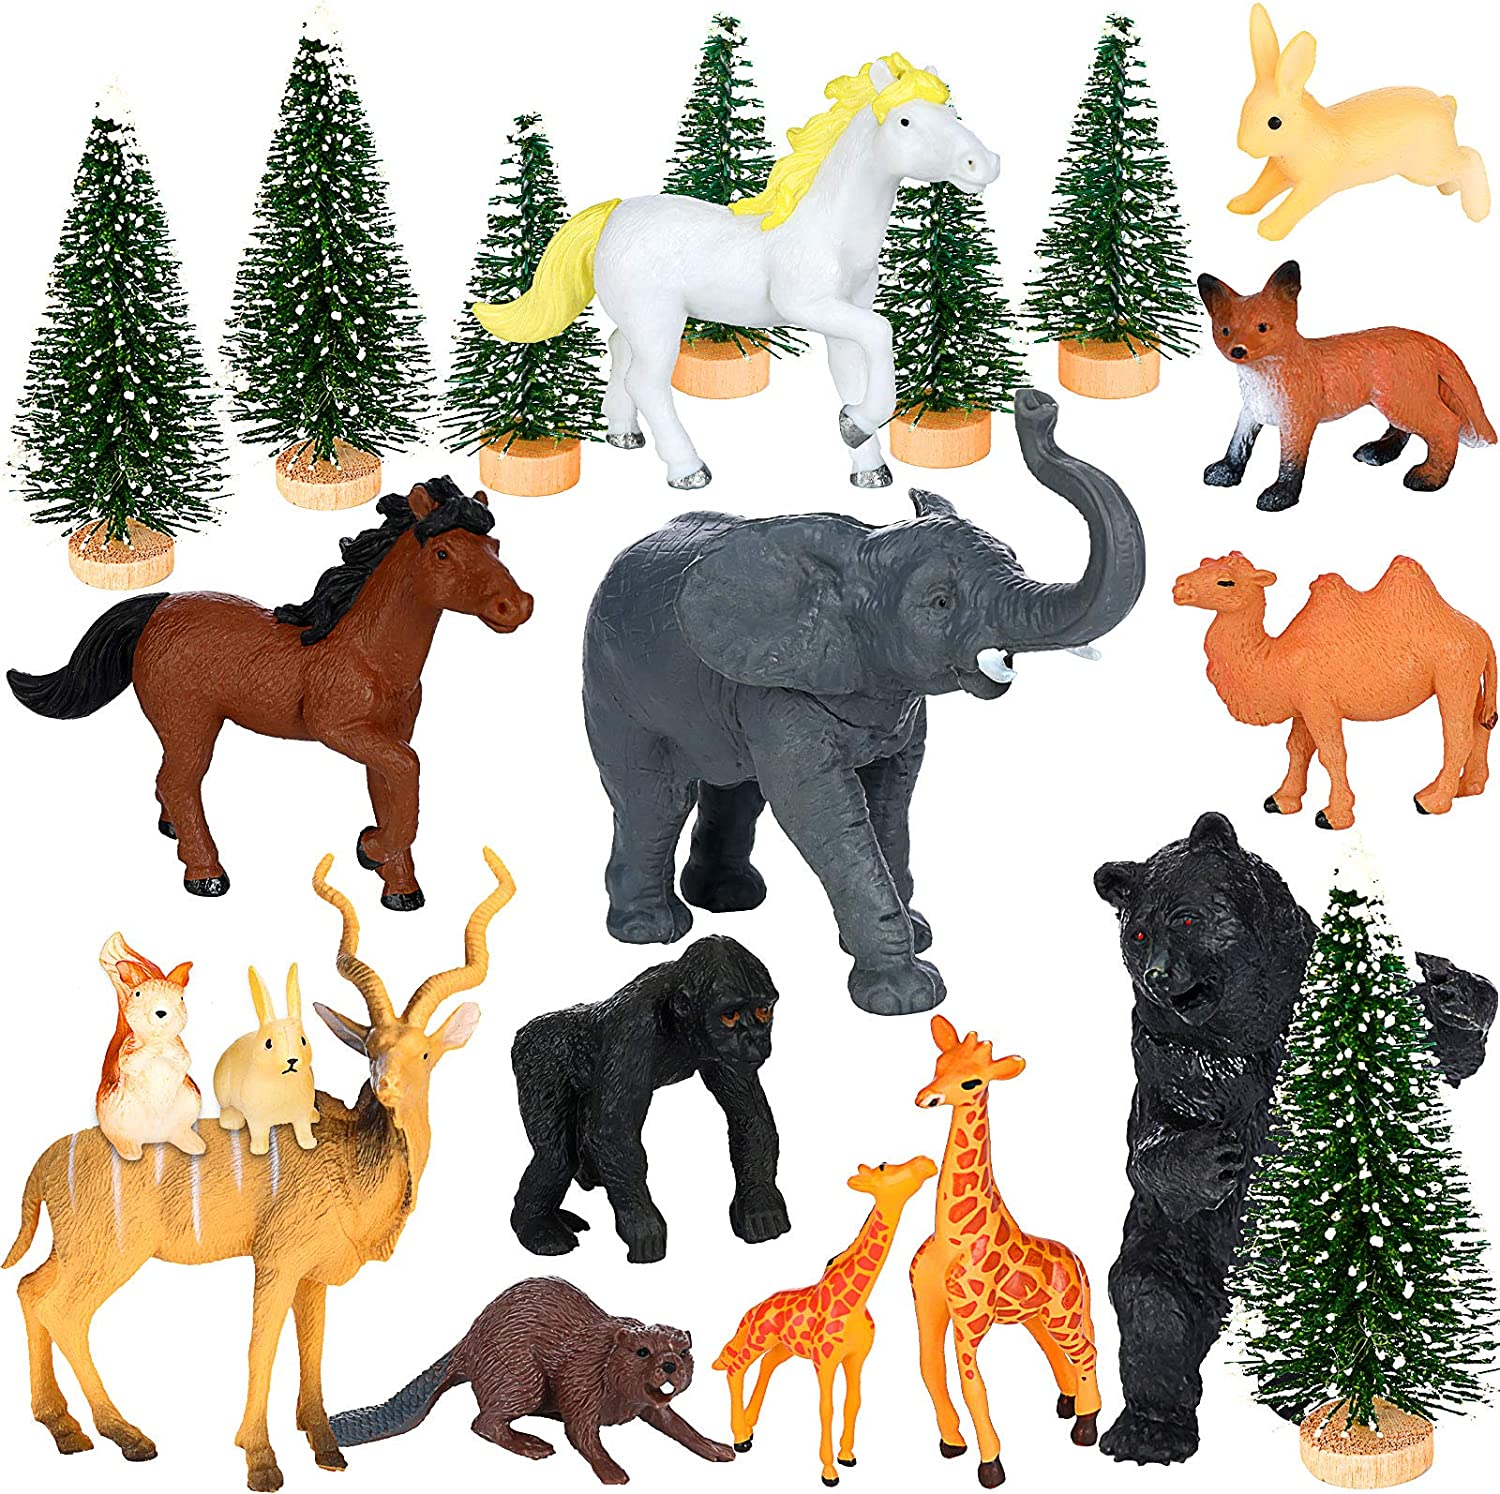 20 Pieces Woodland Animals Figures Miniature Wild Forest Animal Figurines Realistic Woodland Creature Figurine Toys Set Includes 14 Pieces Animals and 6 Piece Trees for Birthday Christmas Party